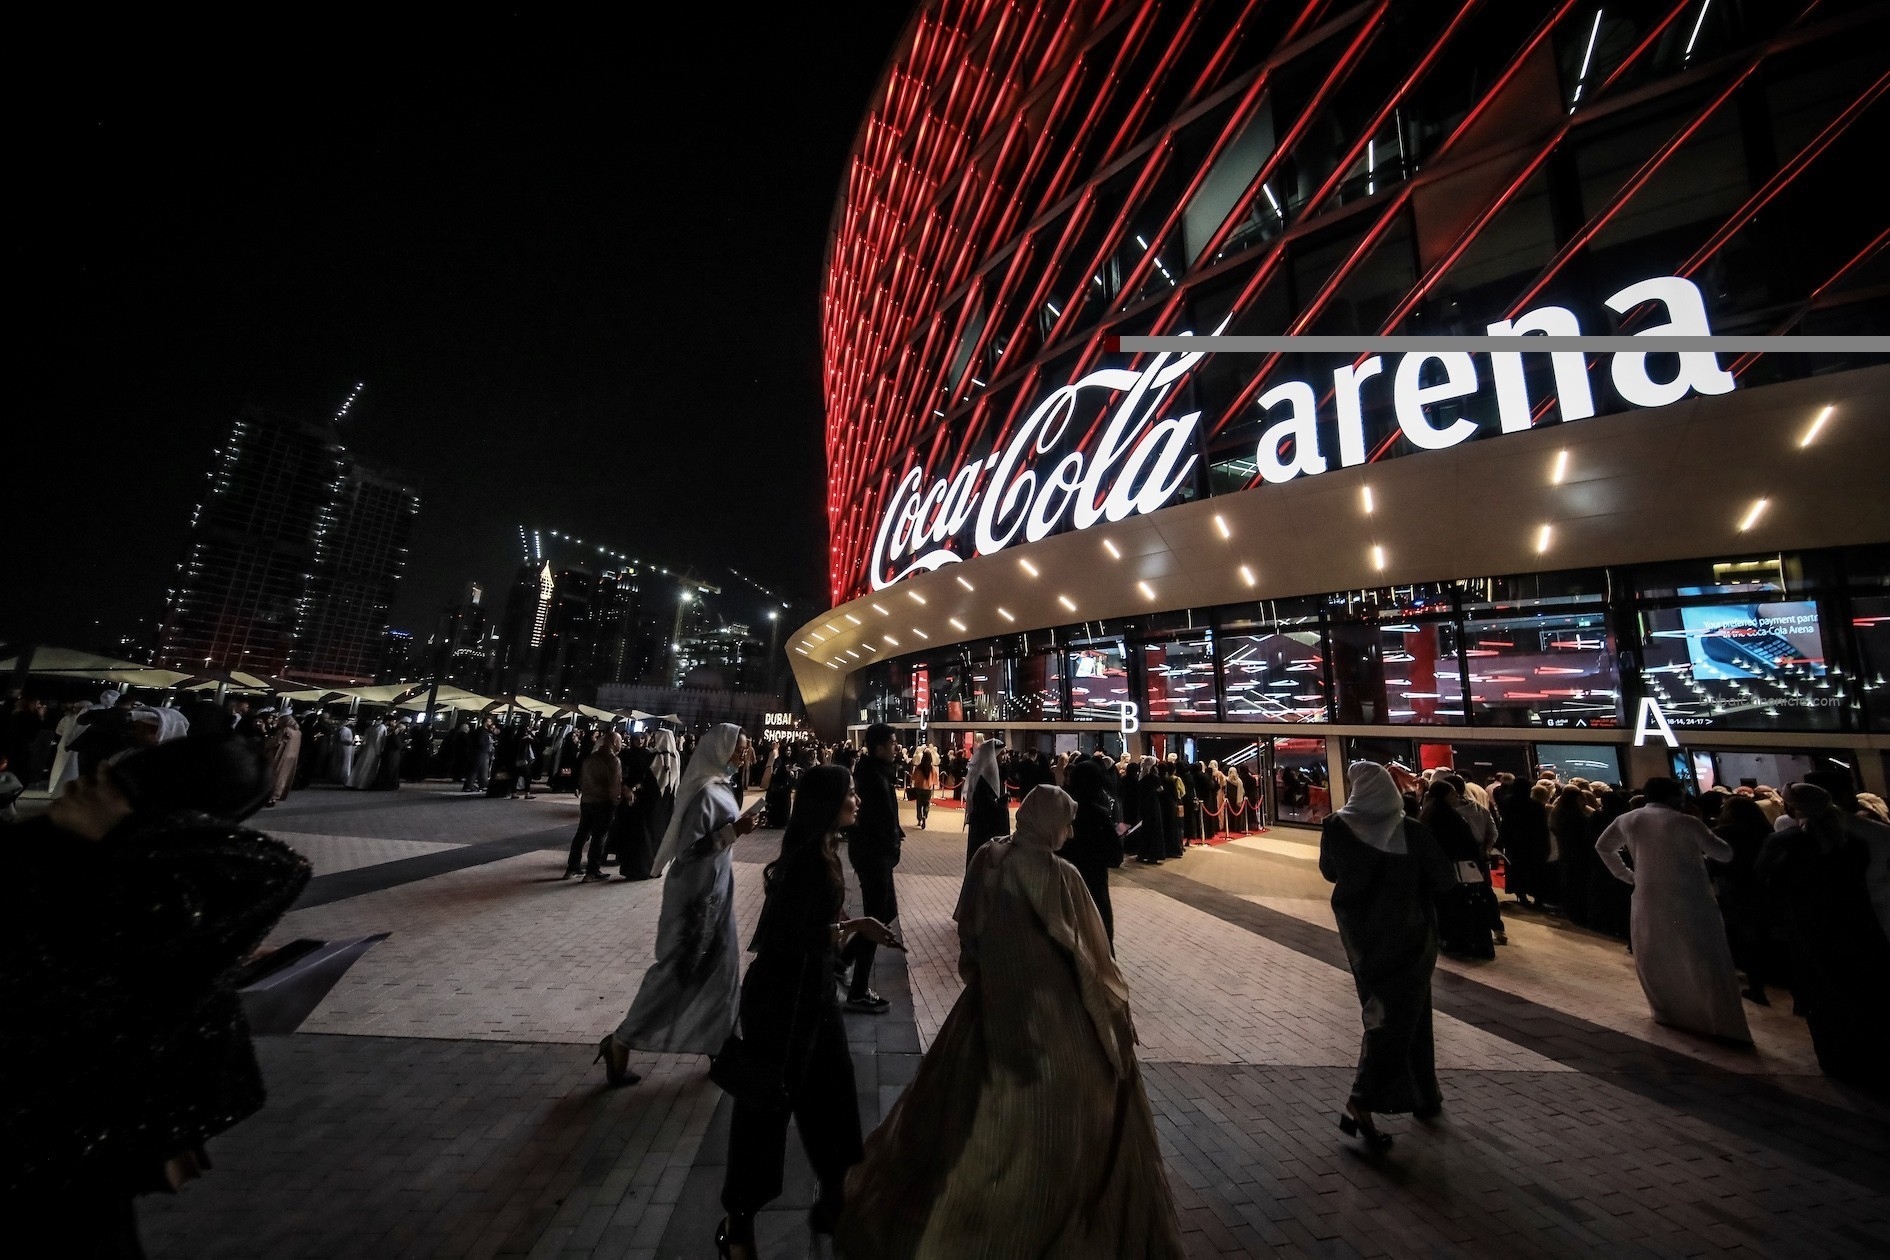 Explore Dubai After Dark with Evening Concerts and Great Live Shows This Dubai Summer Surprises